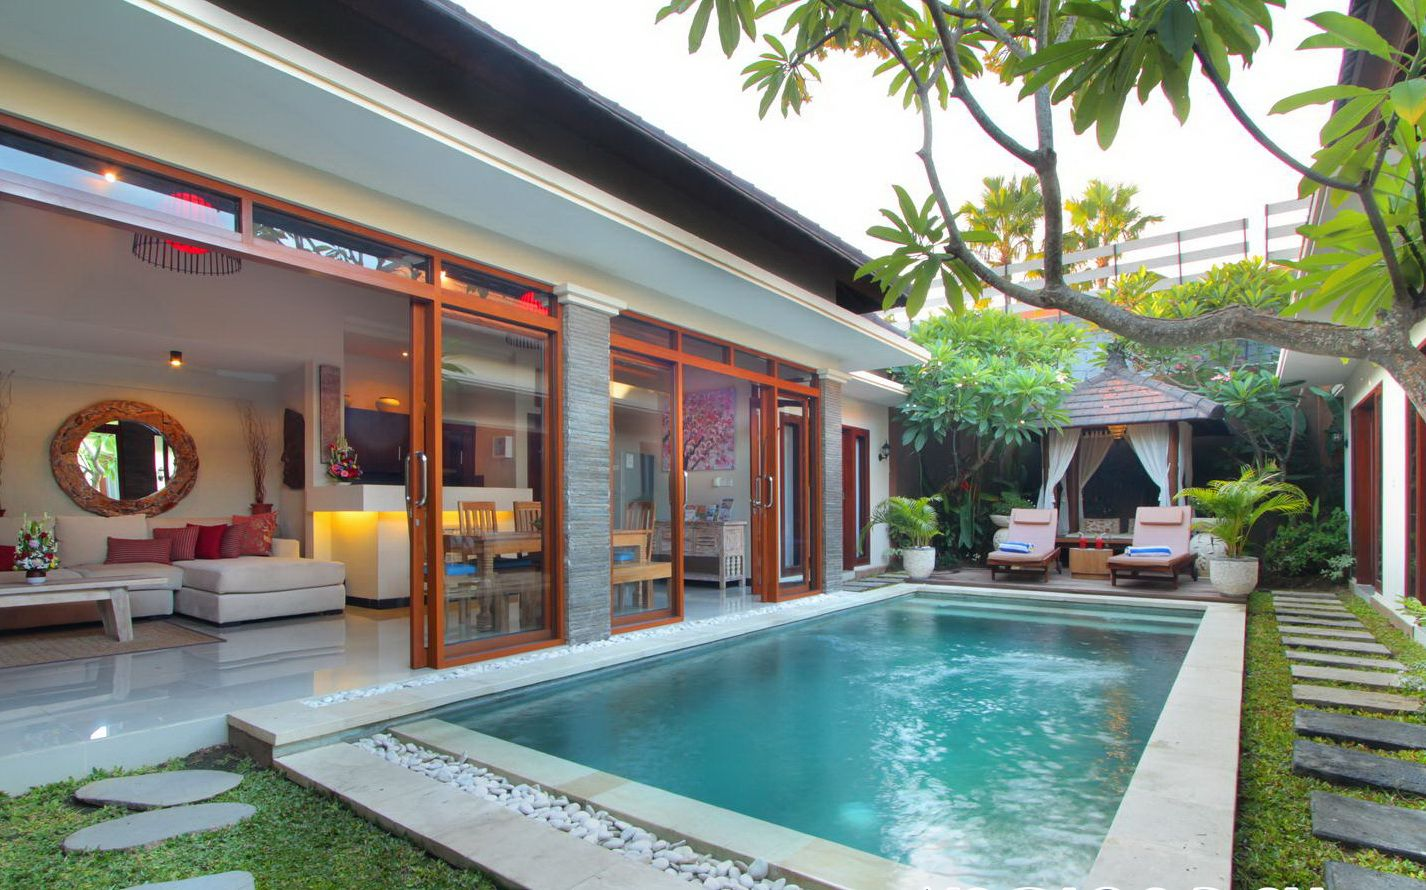 1913781a68a9496007d054fc32b41ad5 - Download Small Modern Bali House Design  Images